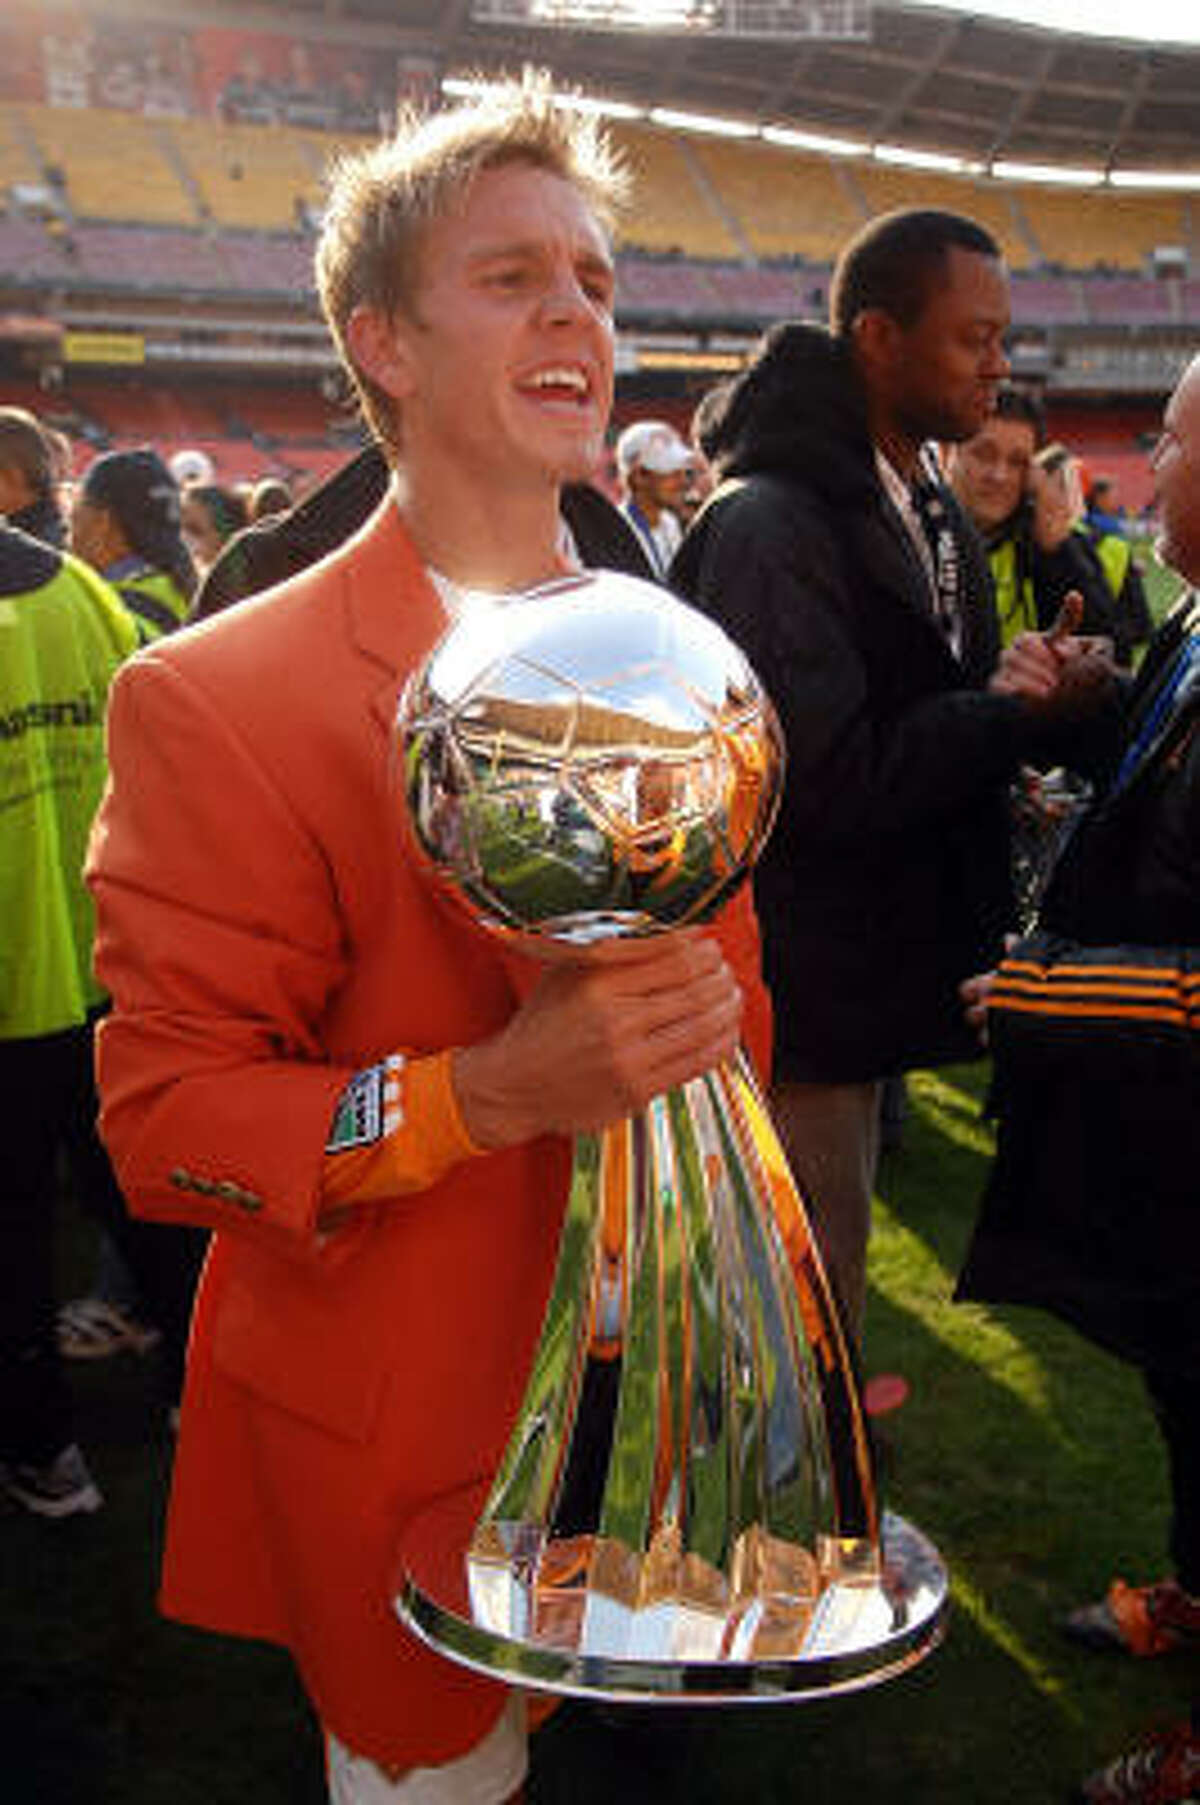 Stuart Holden (shown in 2007) took the MLS gold medal from around his neck — his Super Bowl ring, his World Series ring — and placed it on A.J.'s, columnist Richard Justice writes.